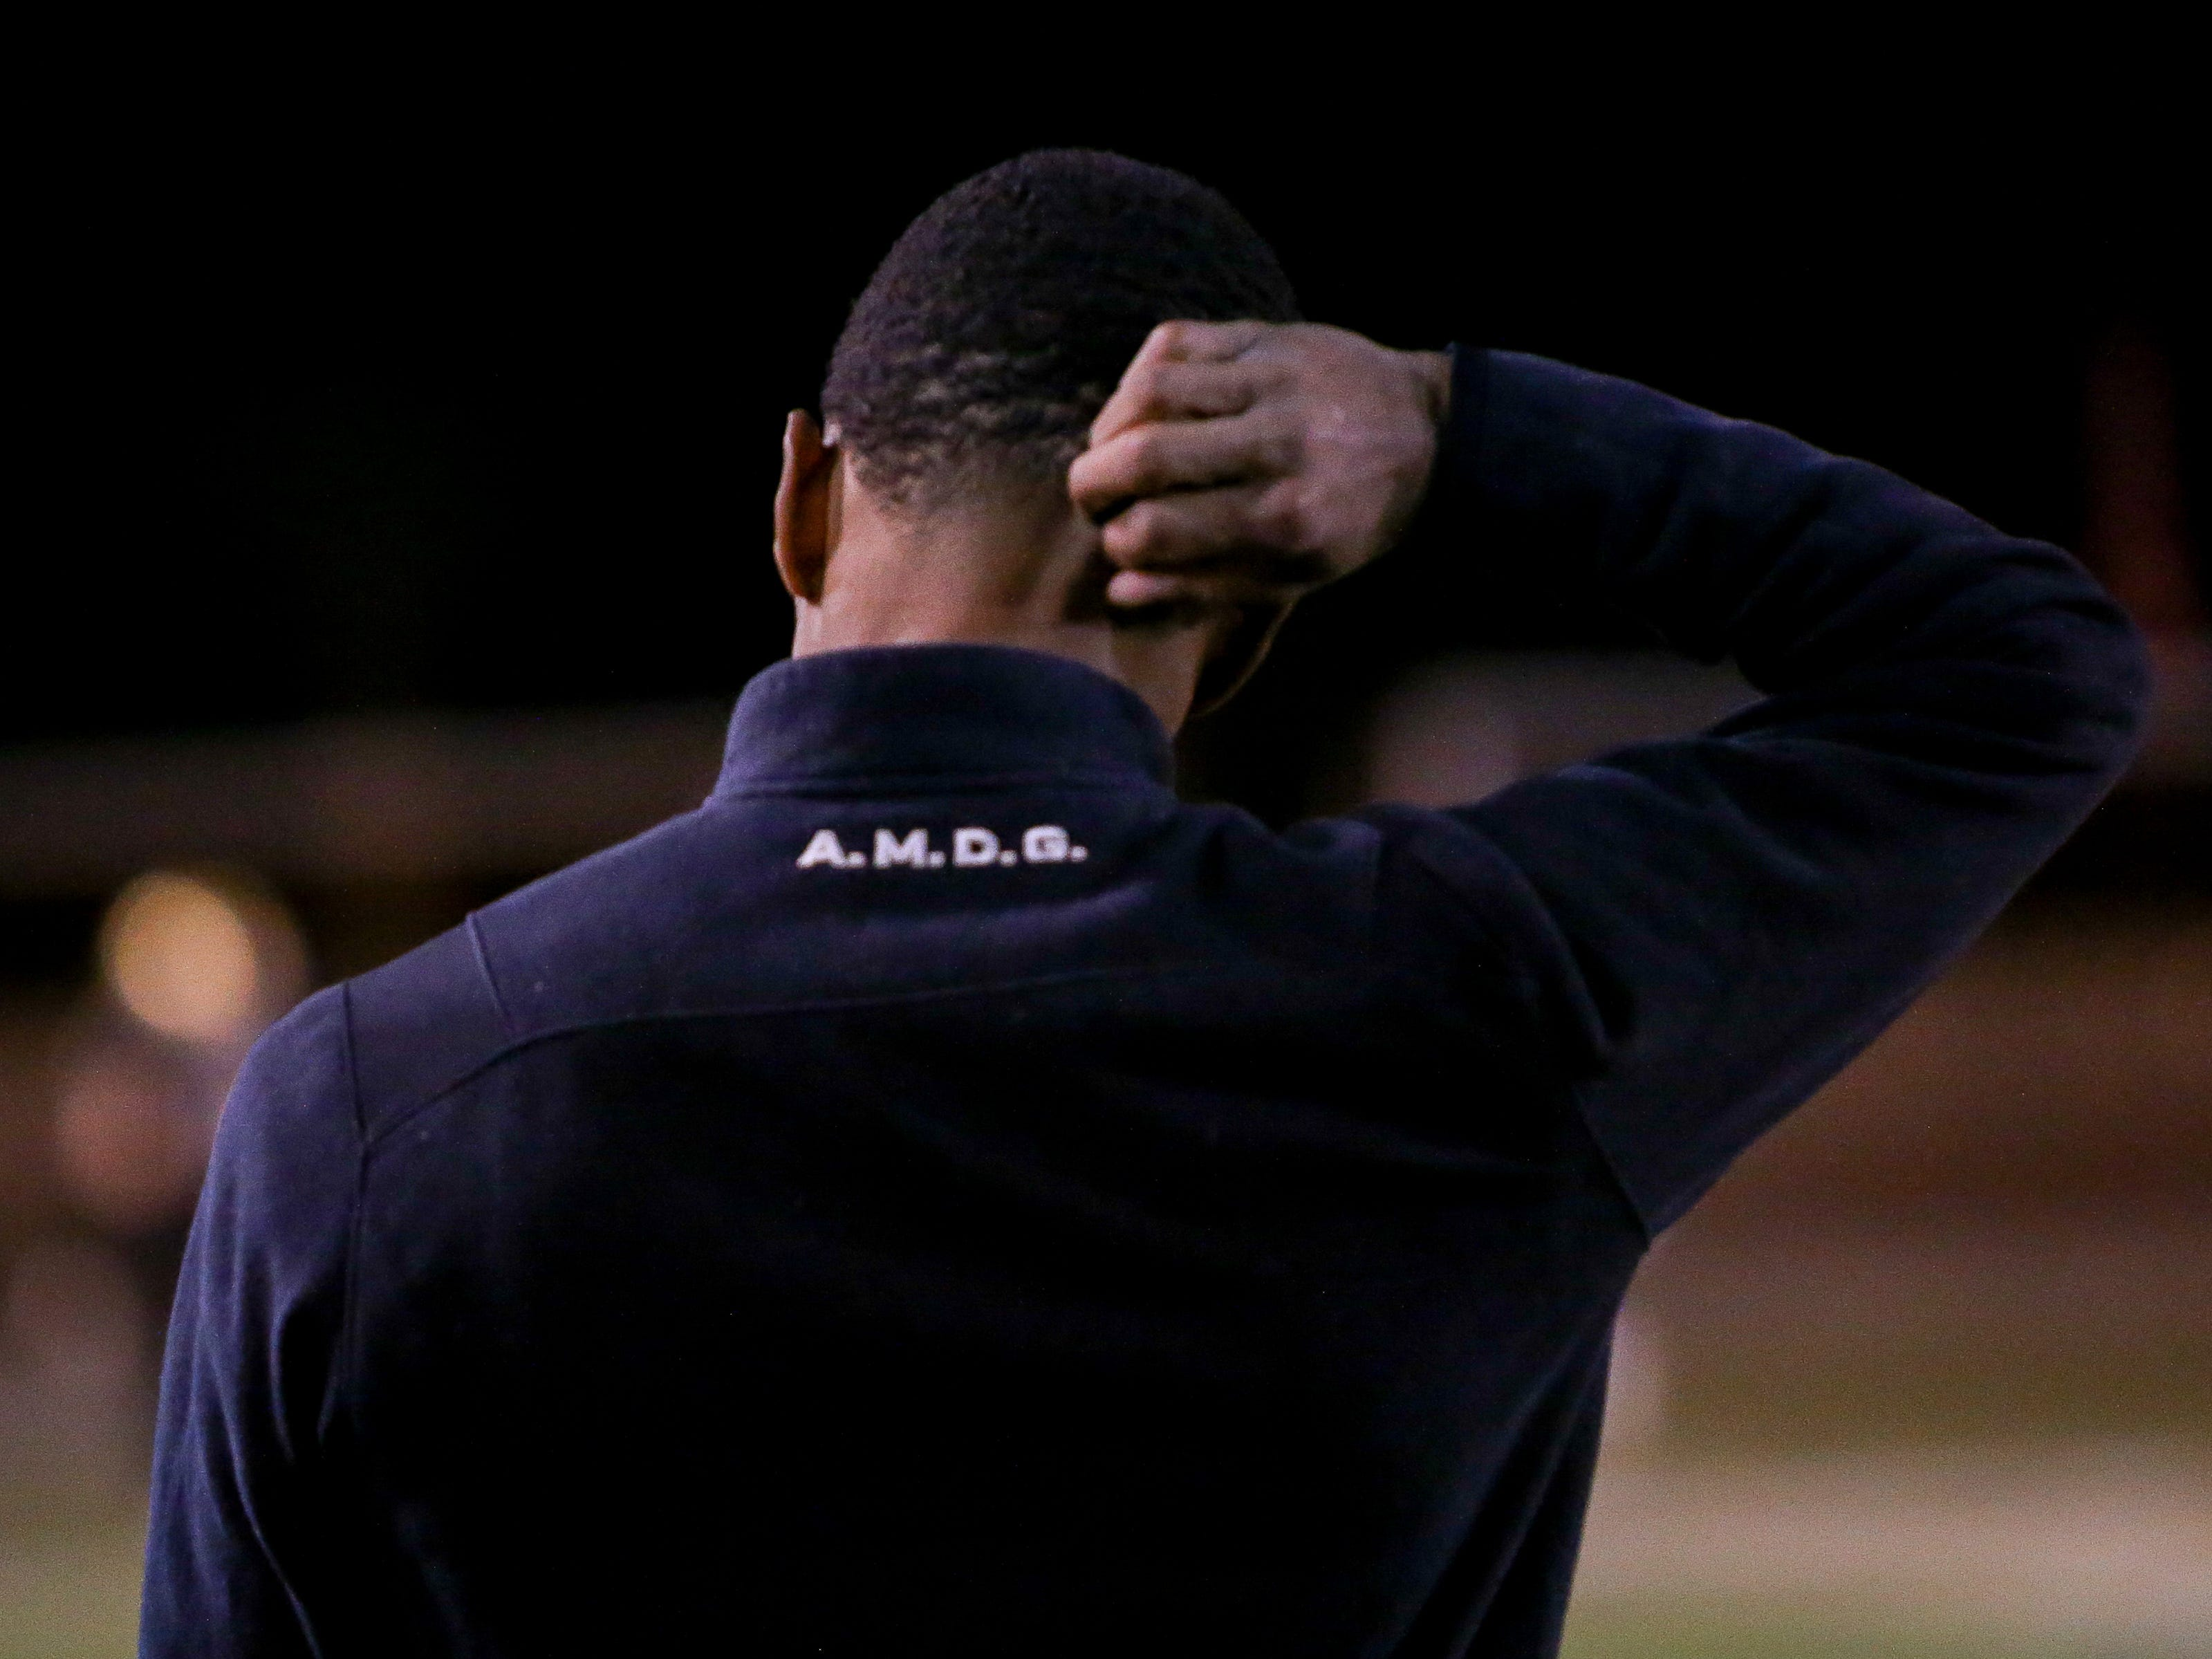 The Xavier Prep varsity football team lost Friday's neutral playoff game against Linfield Christian by a score of 57-13.